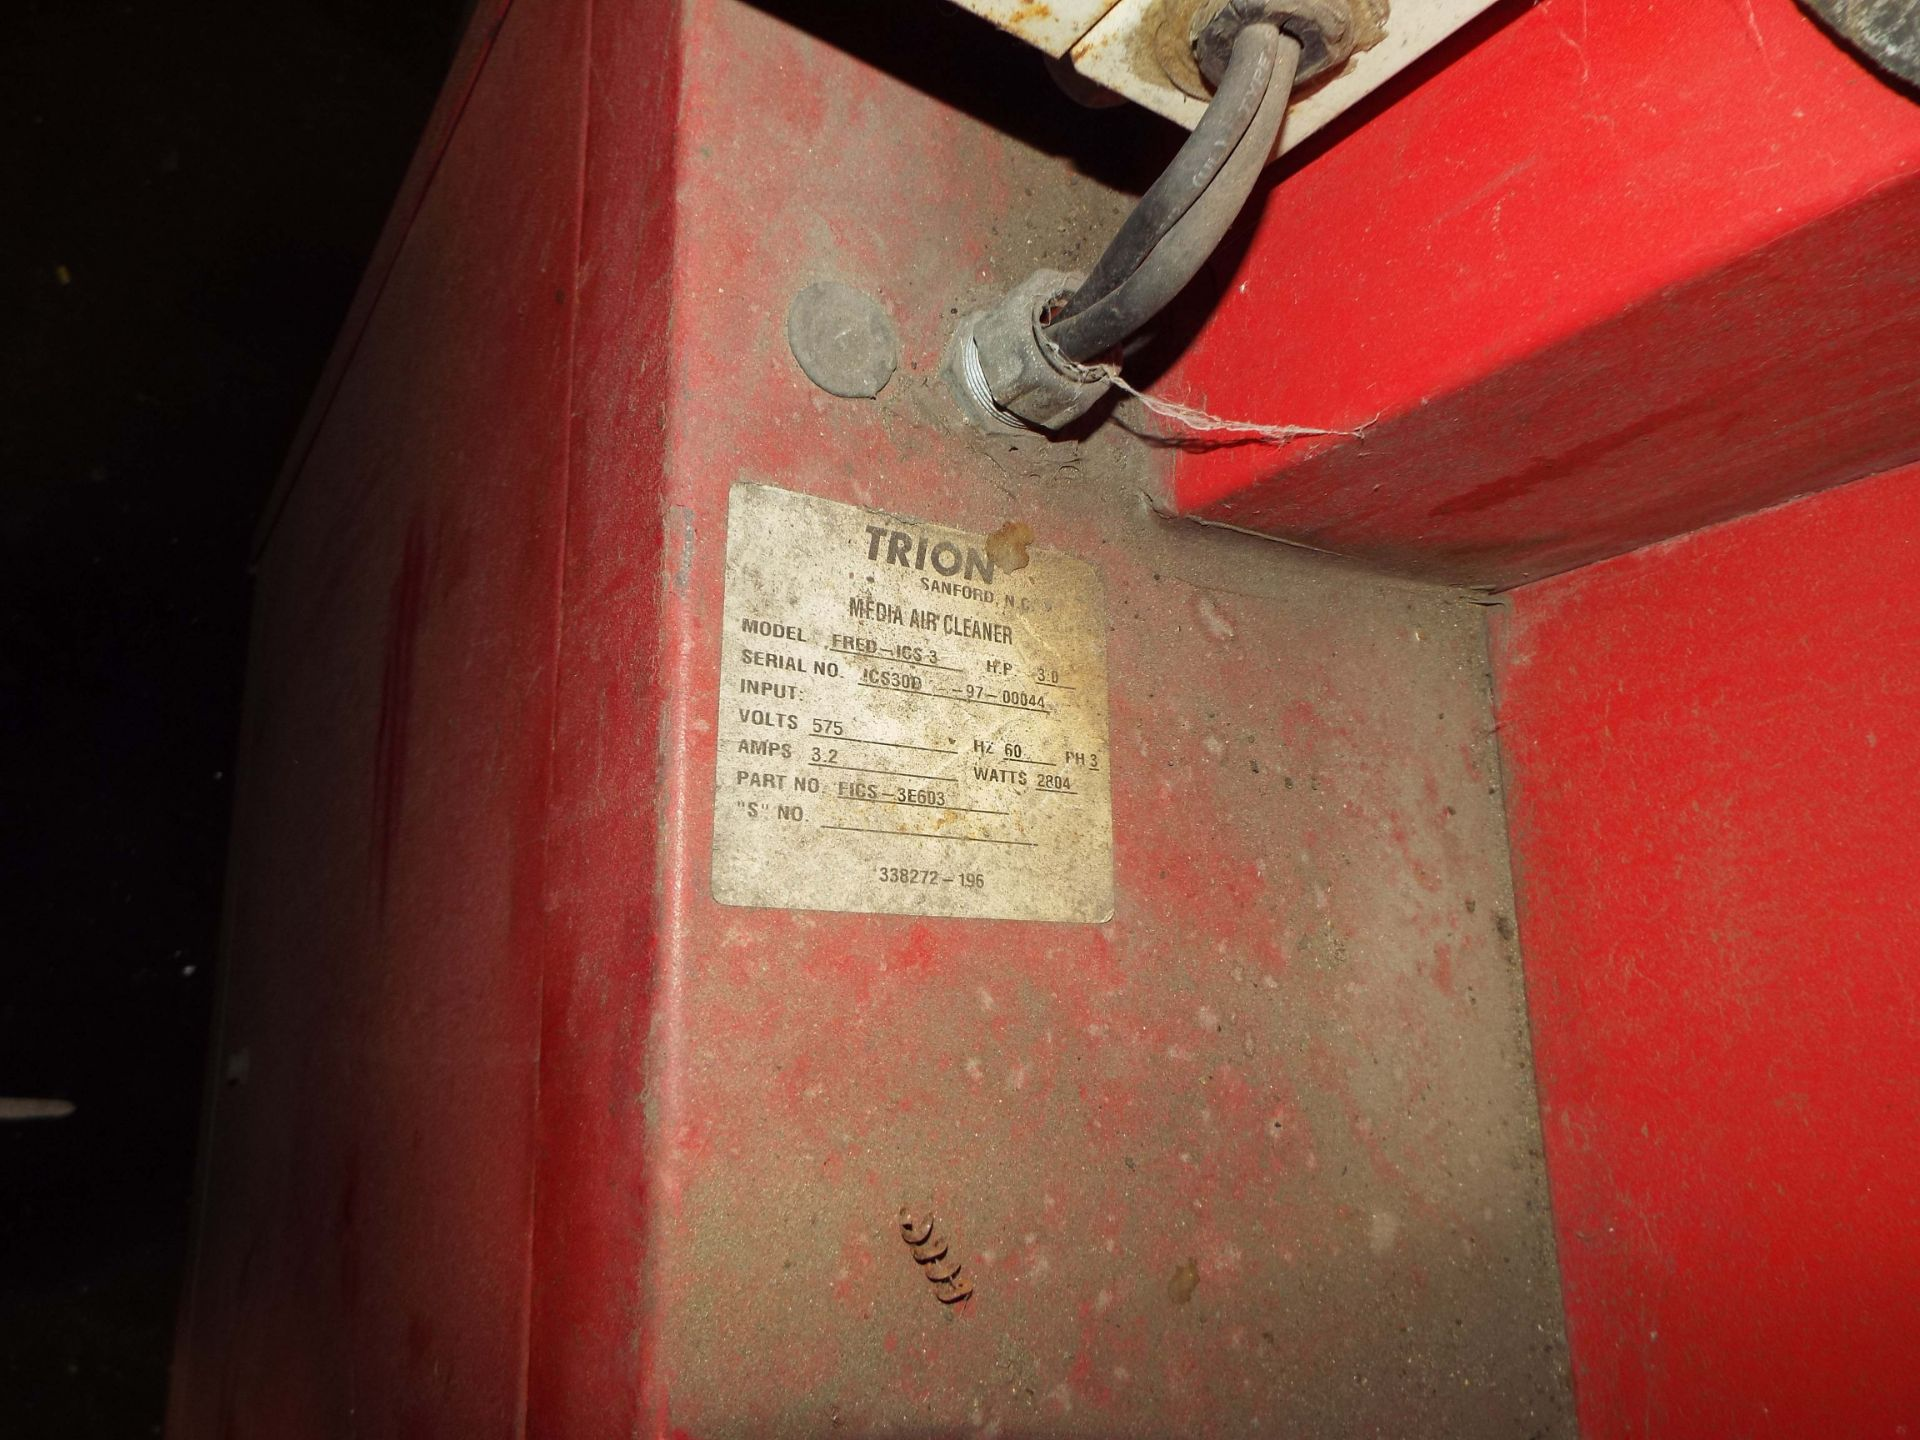 LOT/ (2) FRED PORTABLE FLUME EXTRACTORS (LOCATED AT 460 SIGNET DR, NORTH YORK, ON) - Image 3 of 5